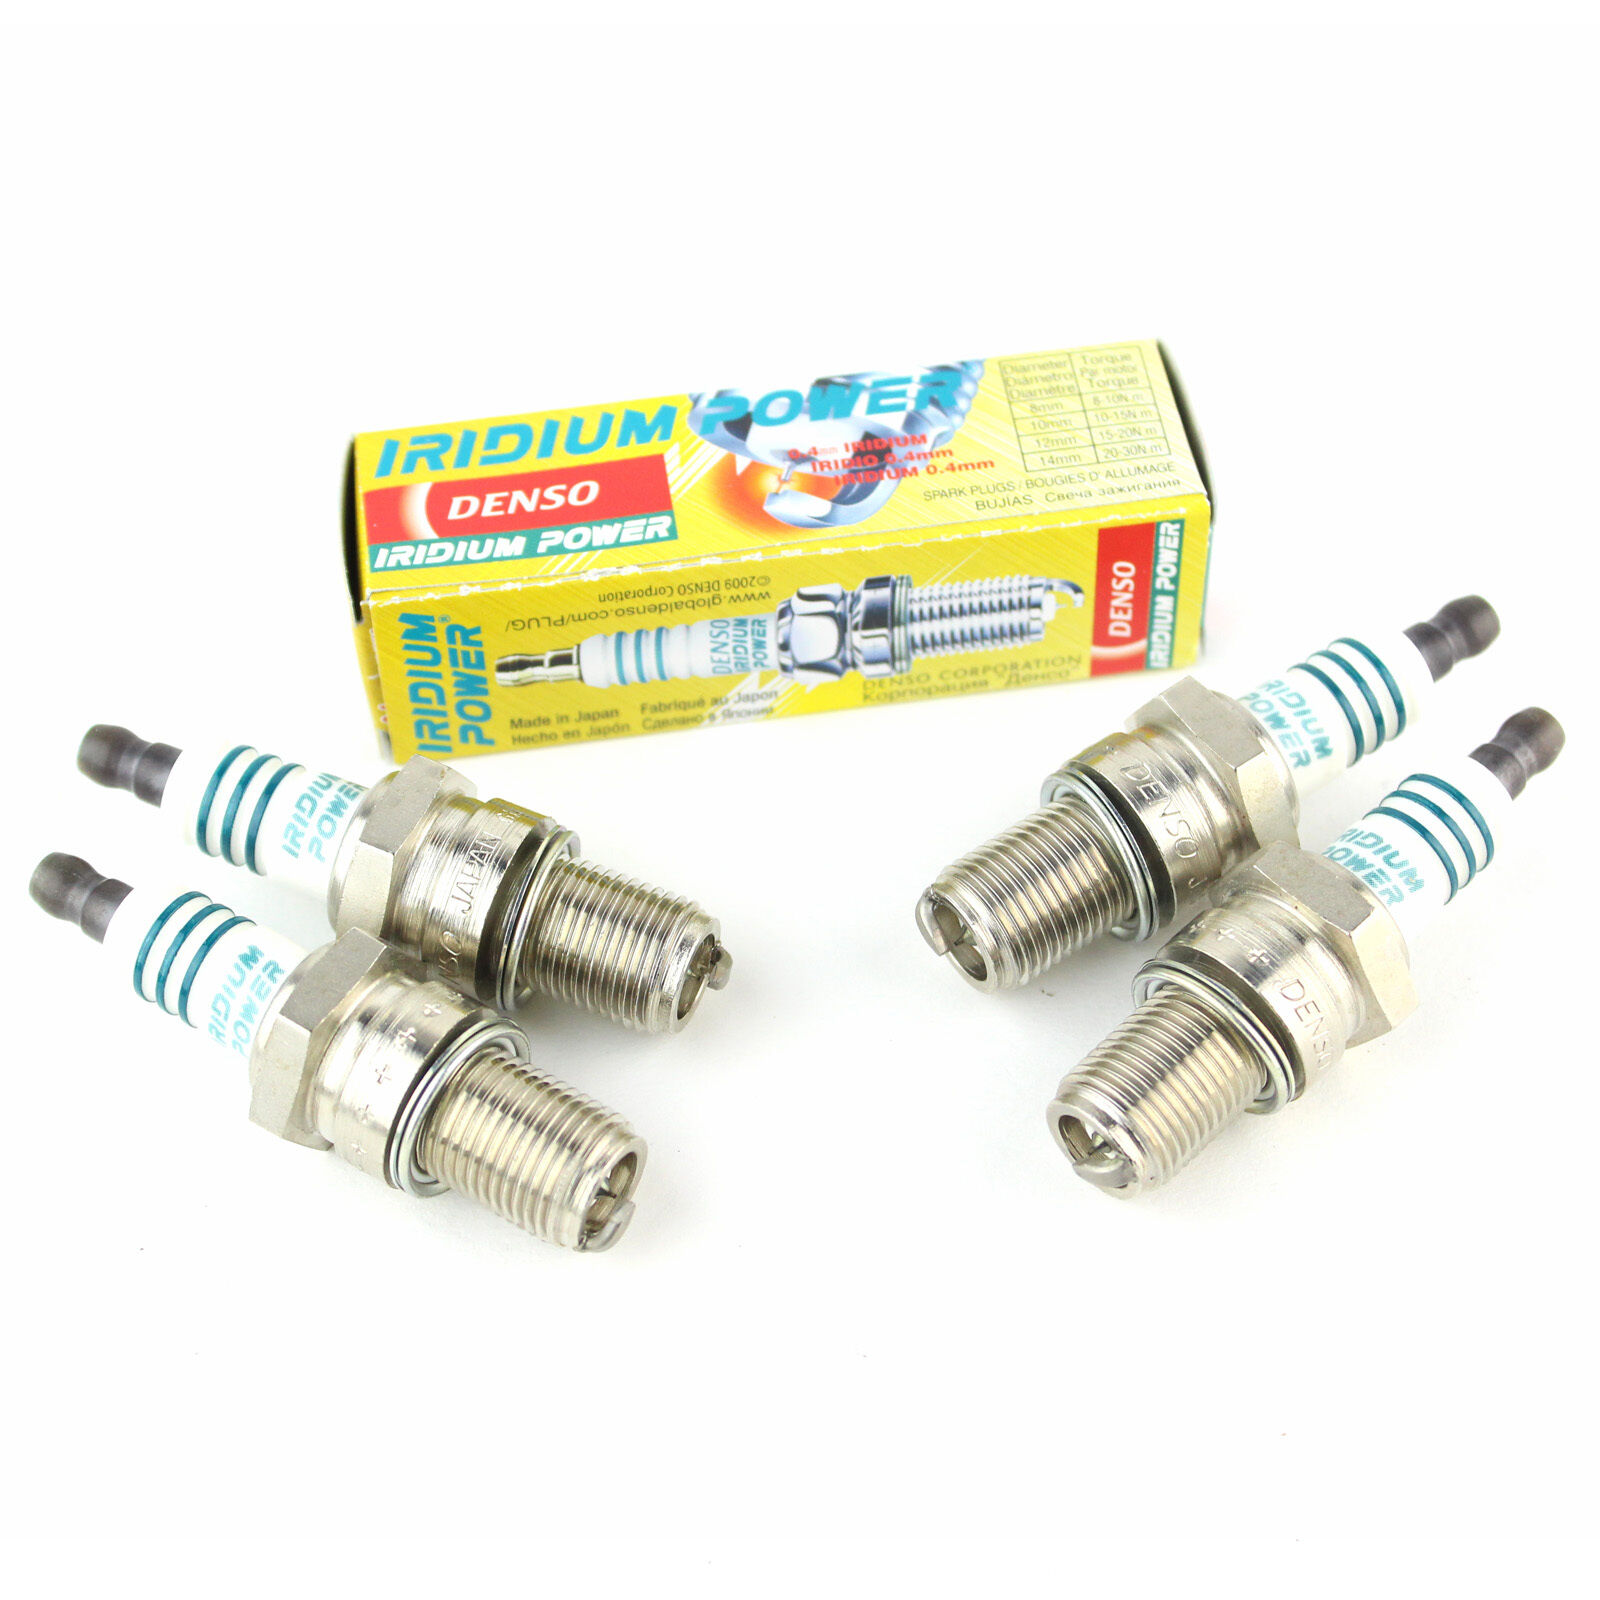 4x Fiat Tipo 160 1.8 IE Genuine Denso Iridium Power Spark Plugs